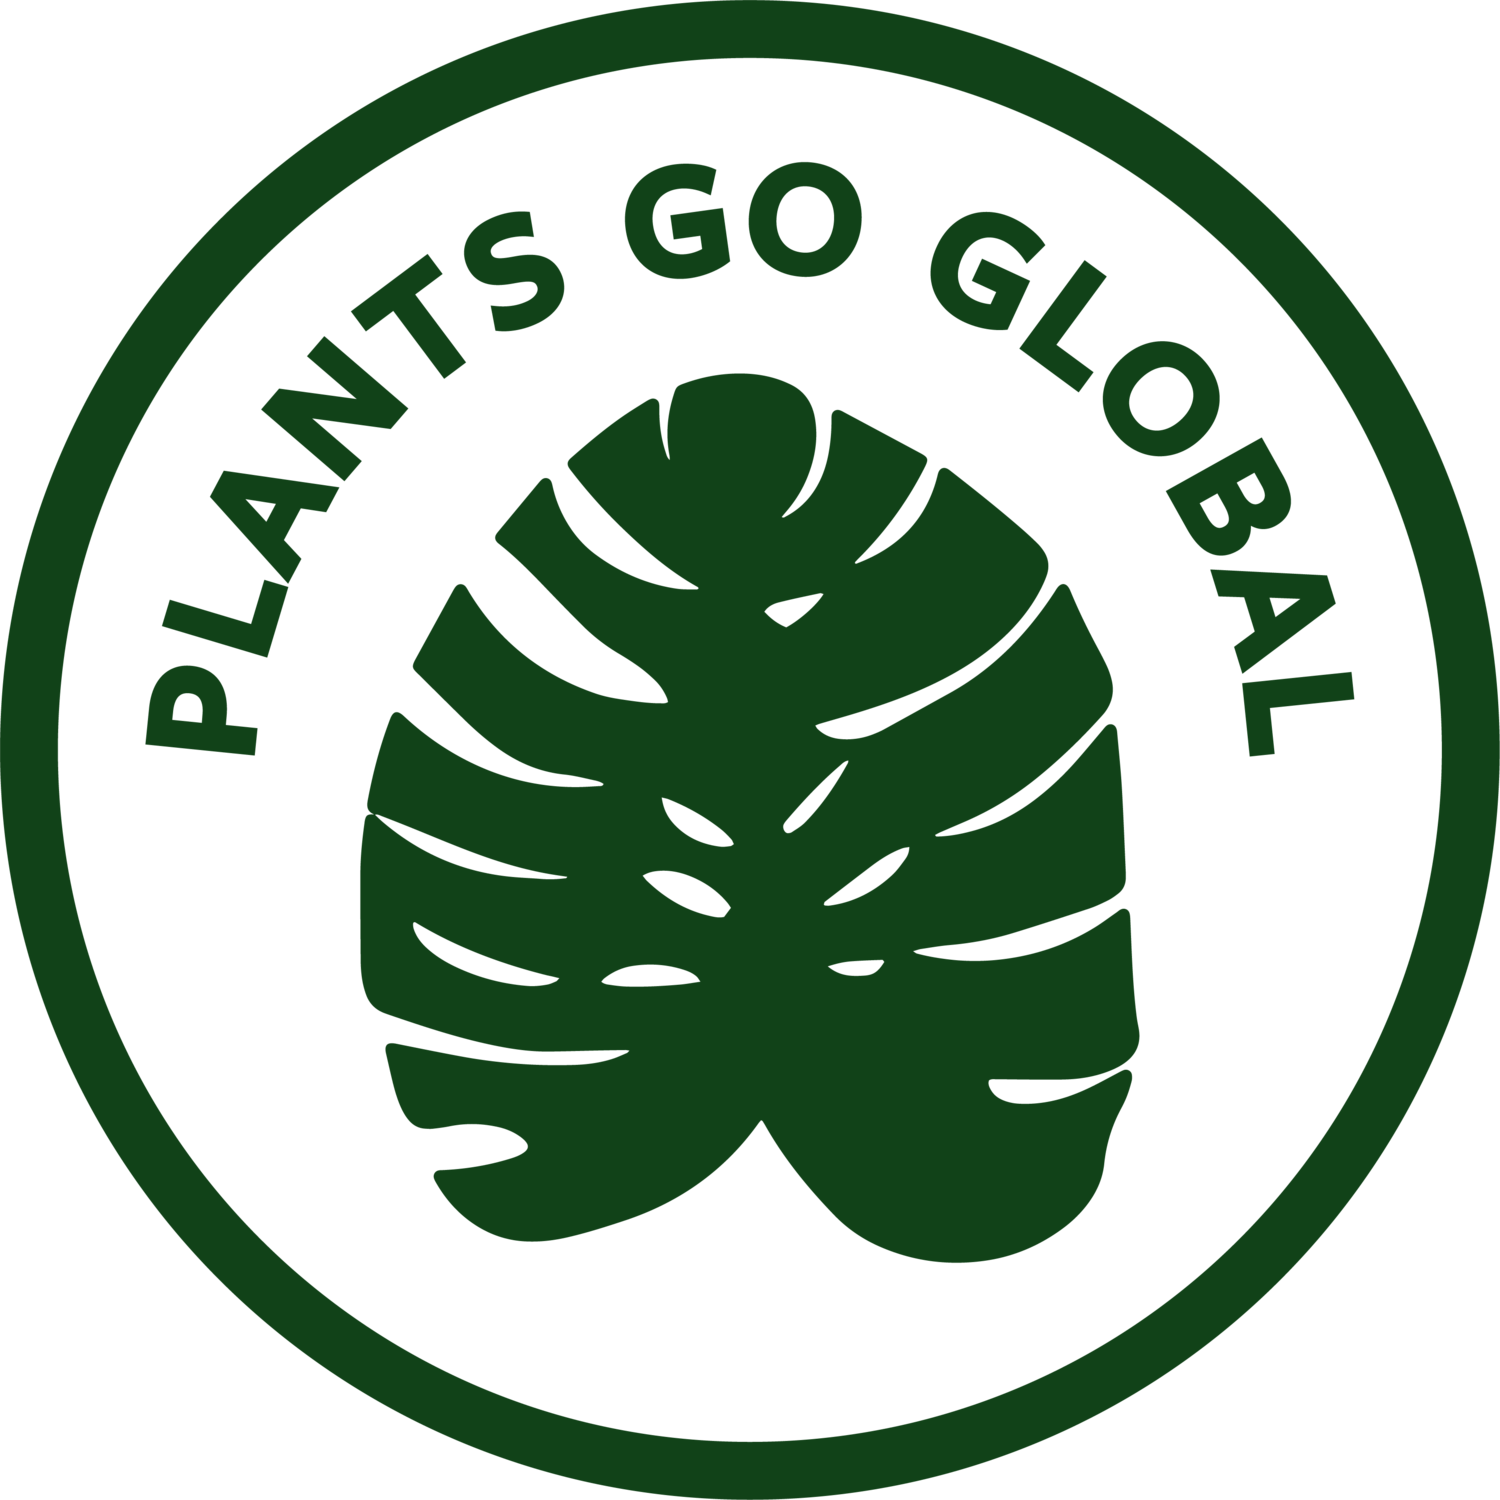 Plants Go Global